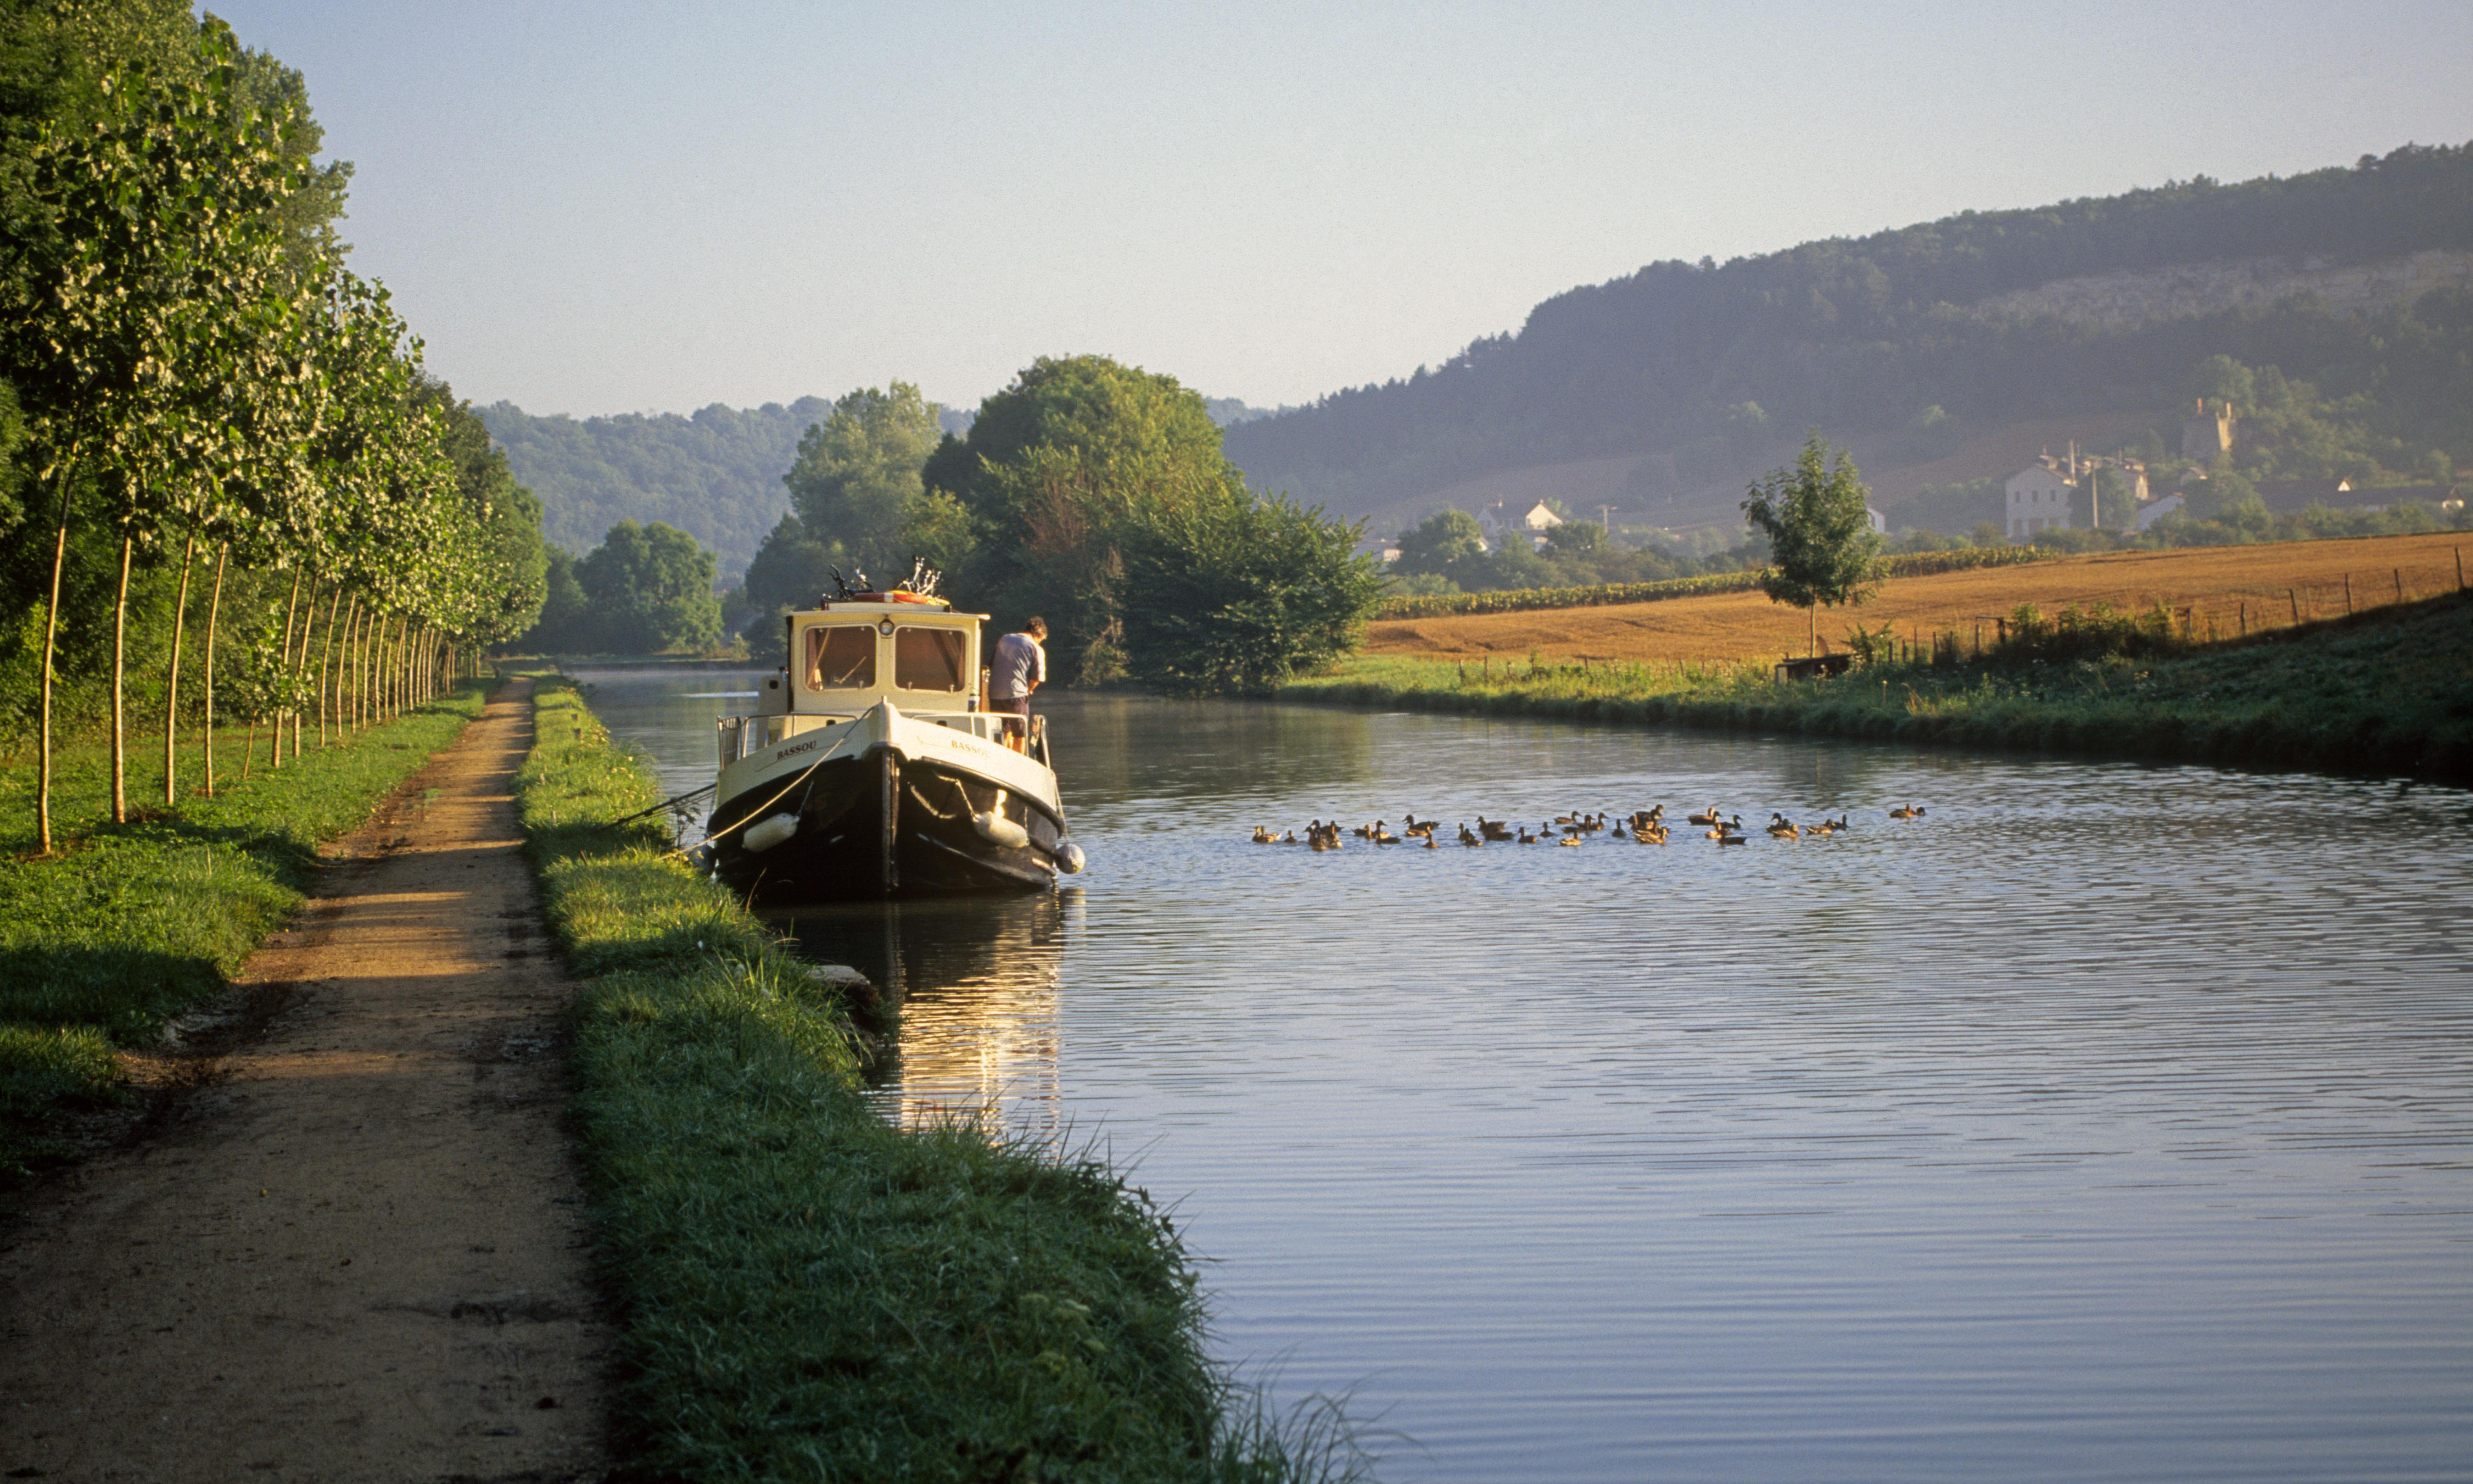 Canal and river boat holidays in Europe: readers' travel tips